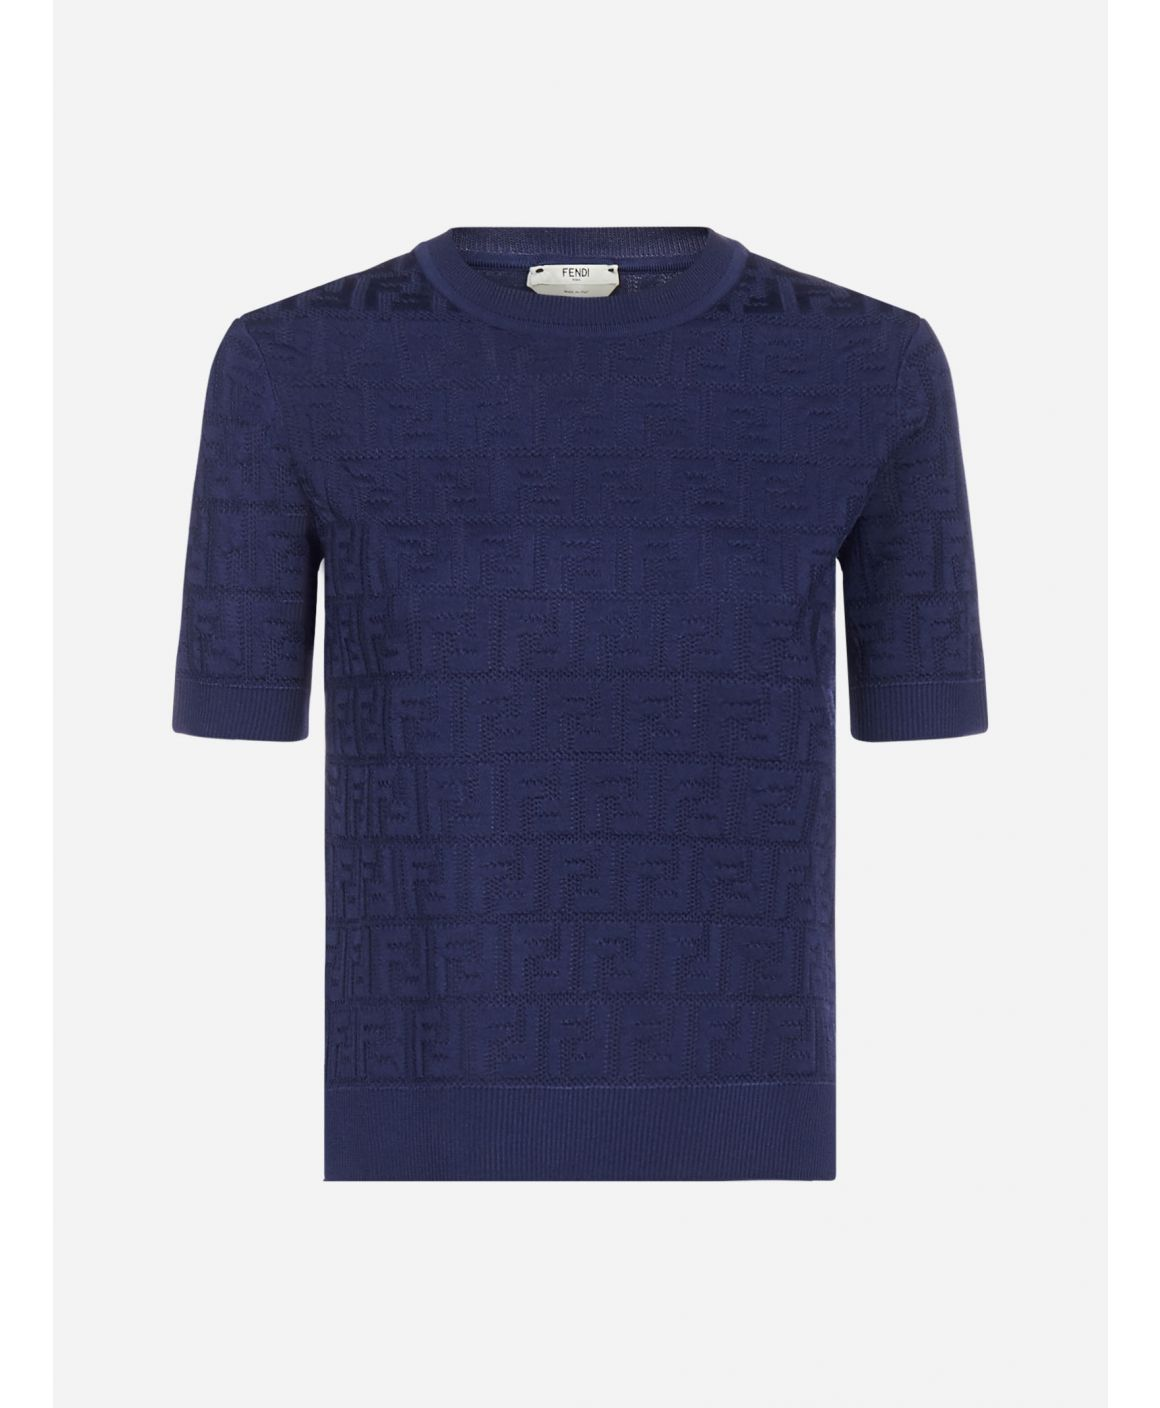 FF jacquard cotton and viscose blend sweater